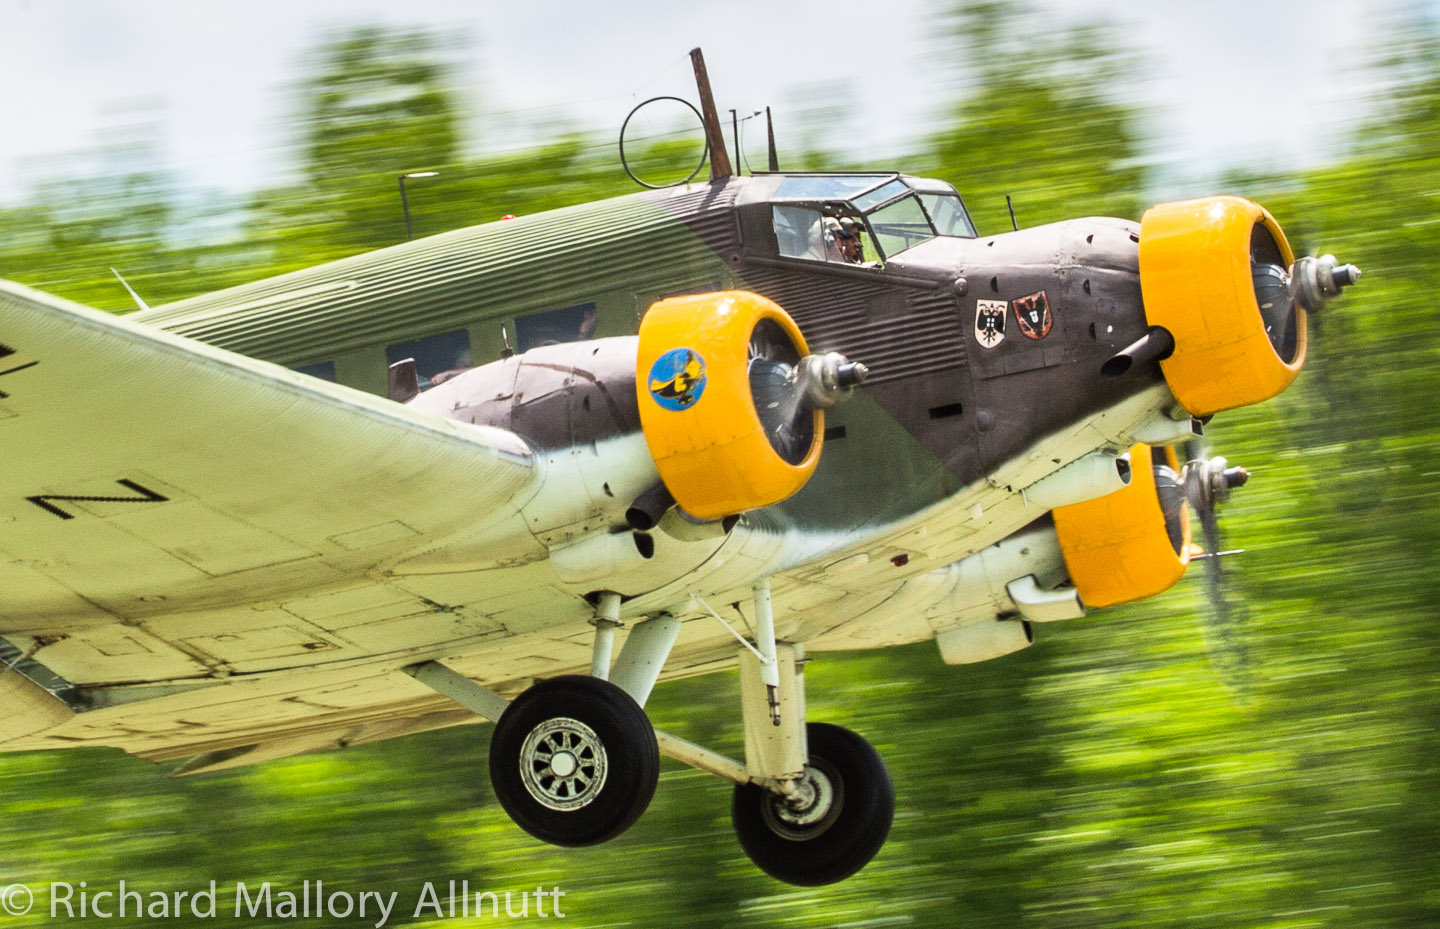 _C8A9213 - Richard Mallory Allnutt photo - Warbirds Over the Beach - Military Aviation Museum - Pungo, VA - May 17, 2014